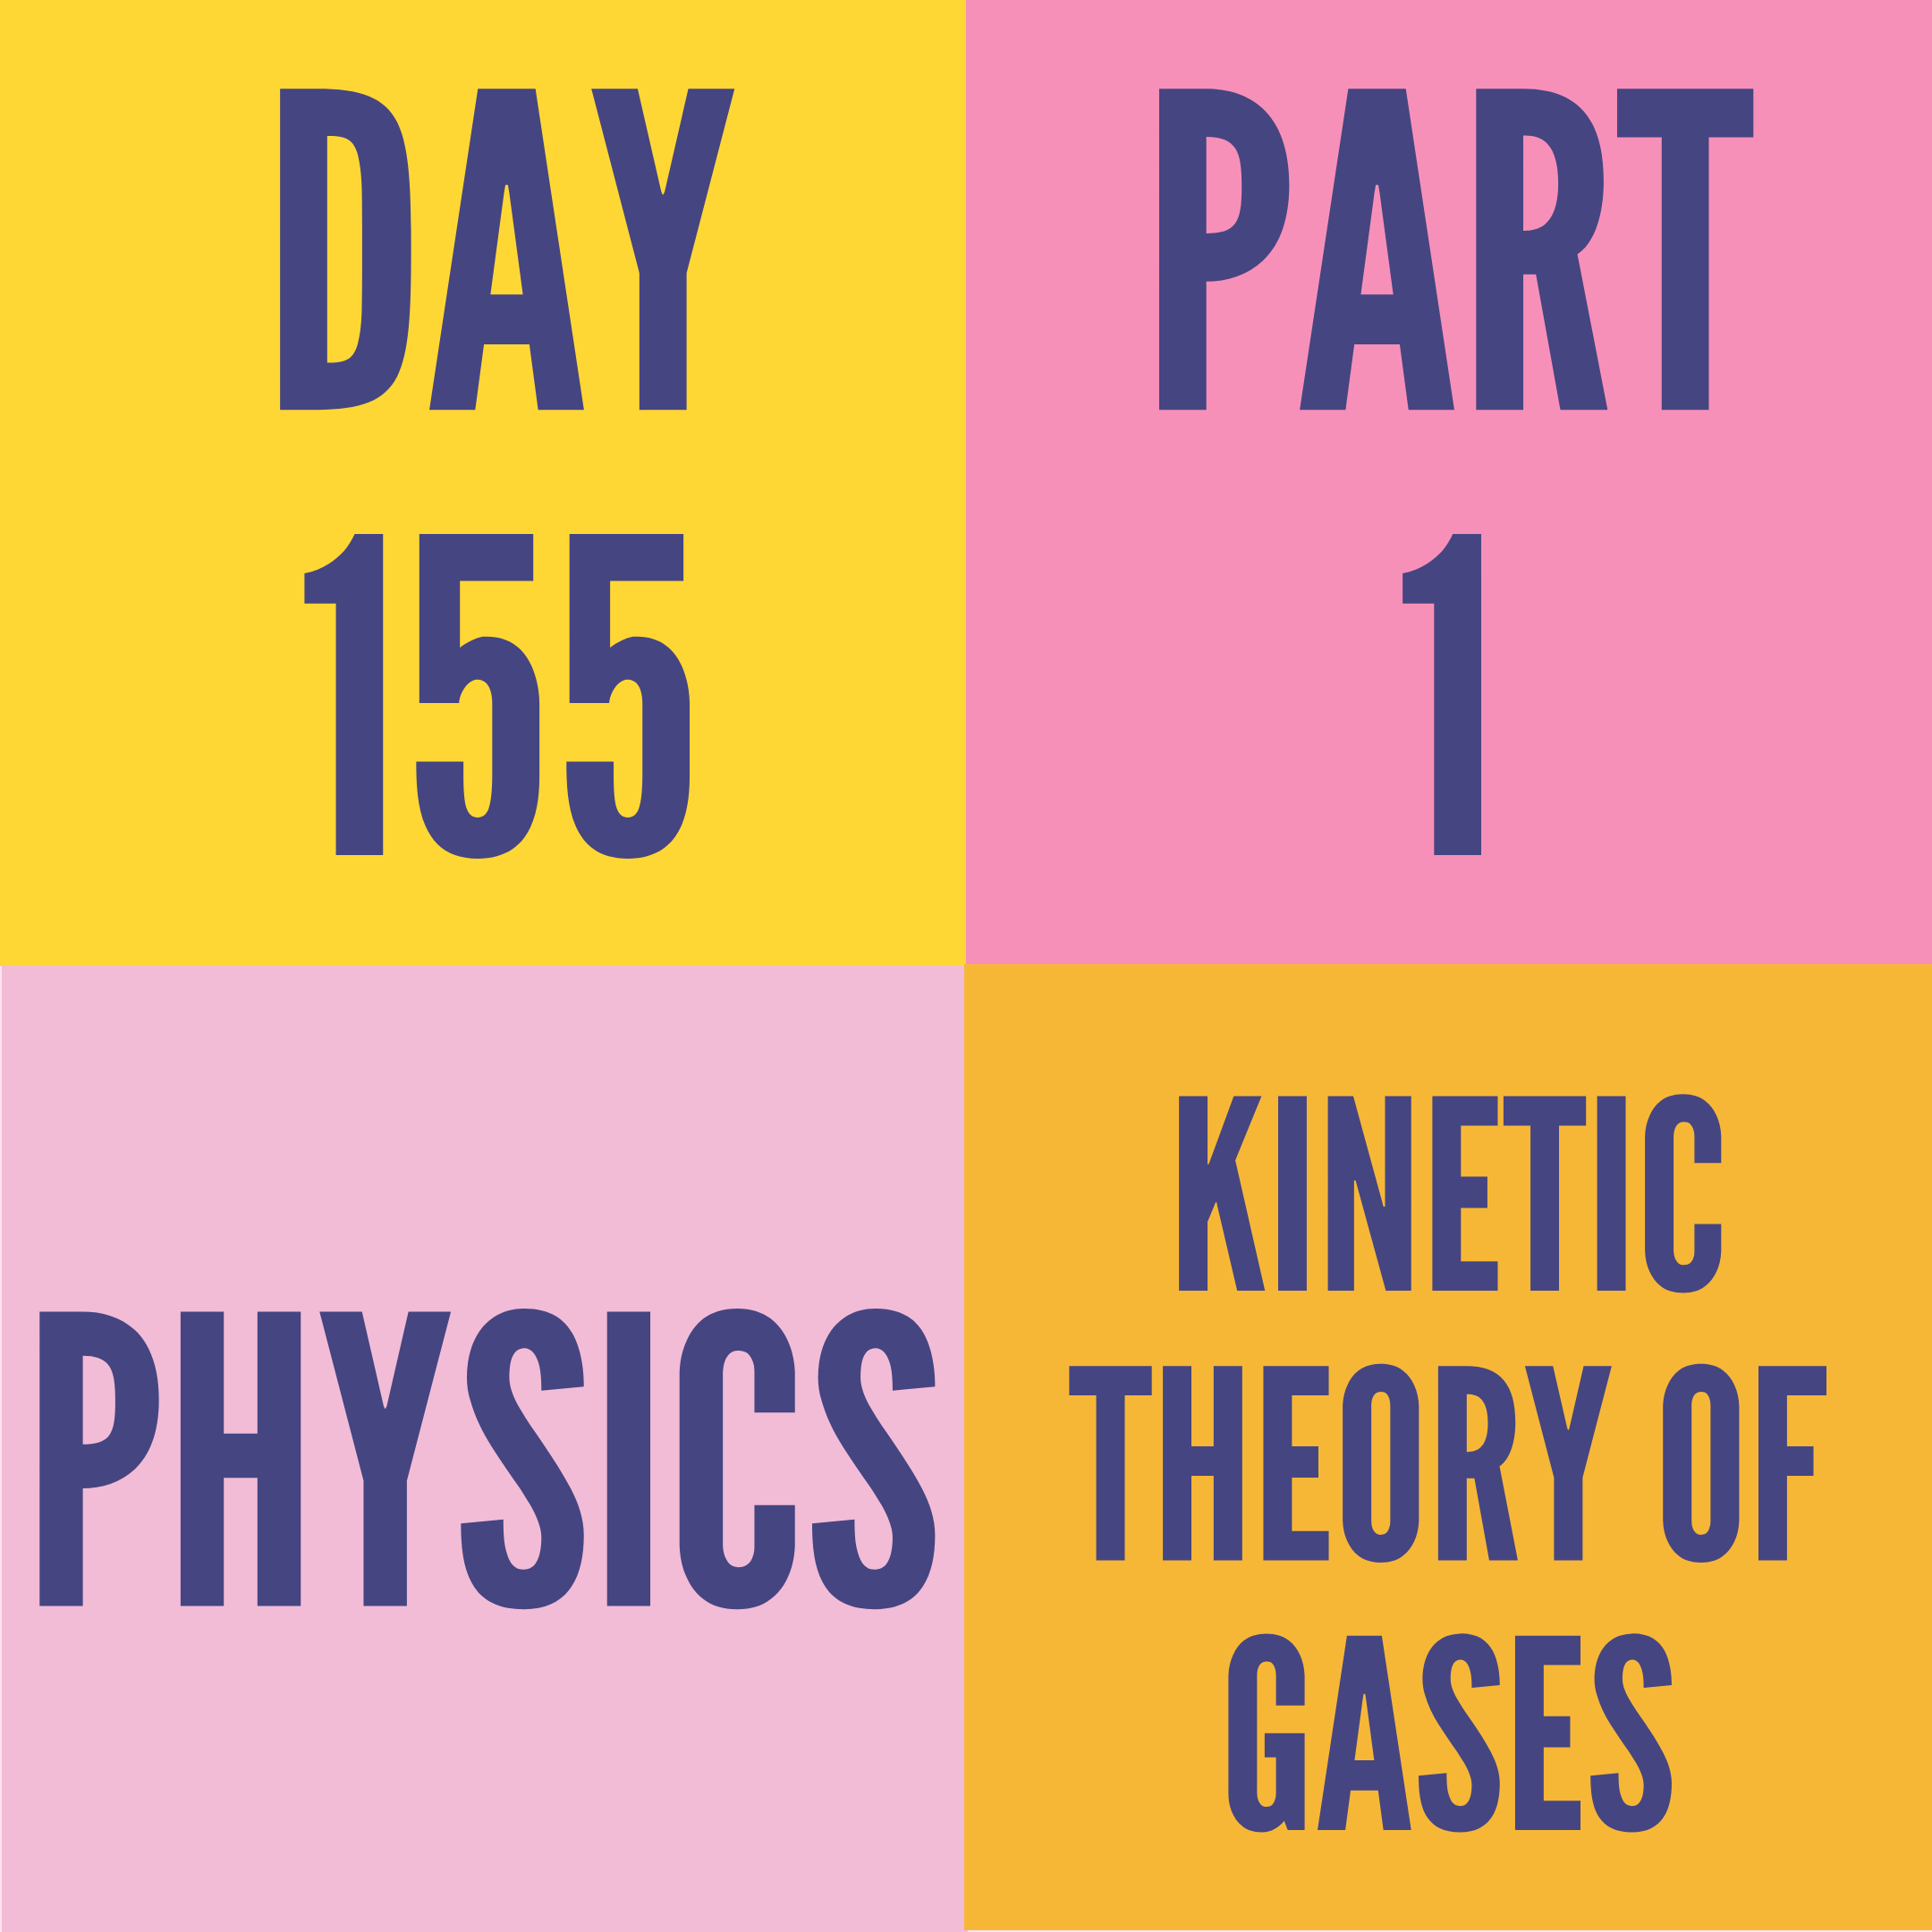 DAY-155 PART-1 KINETIC THEORY OF GASES